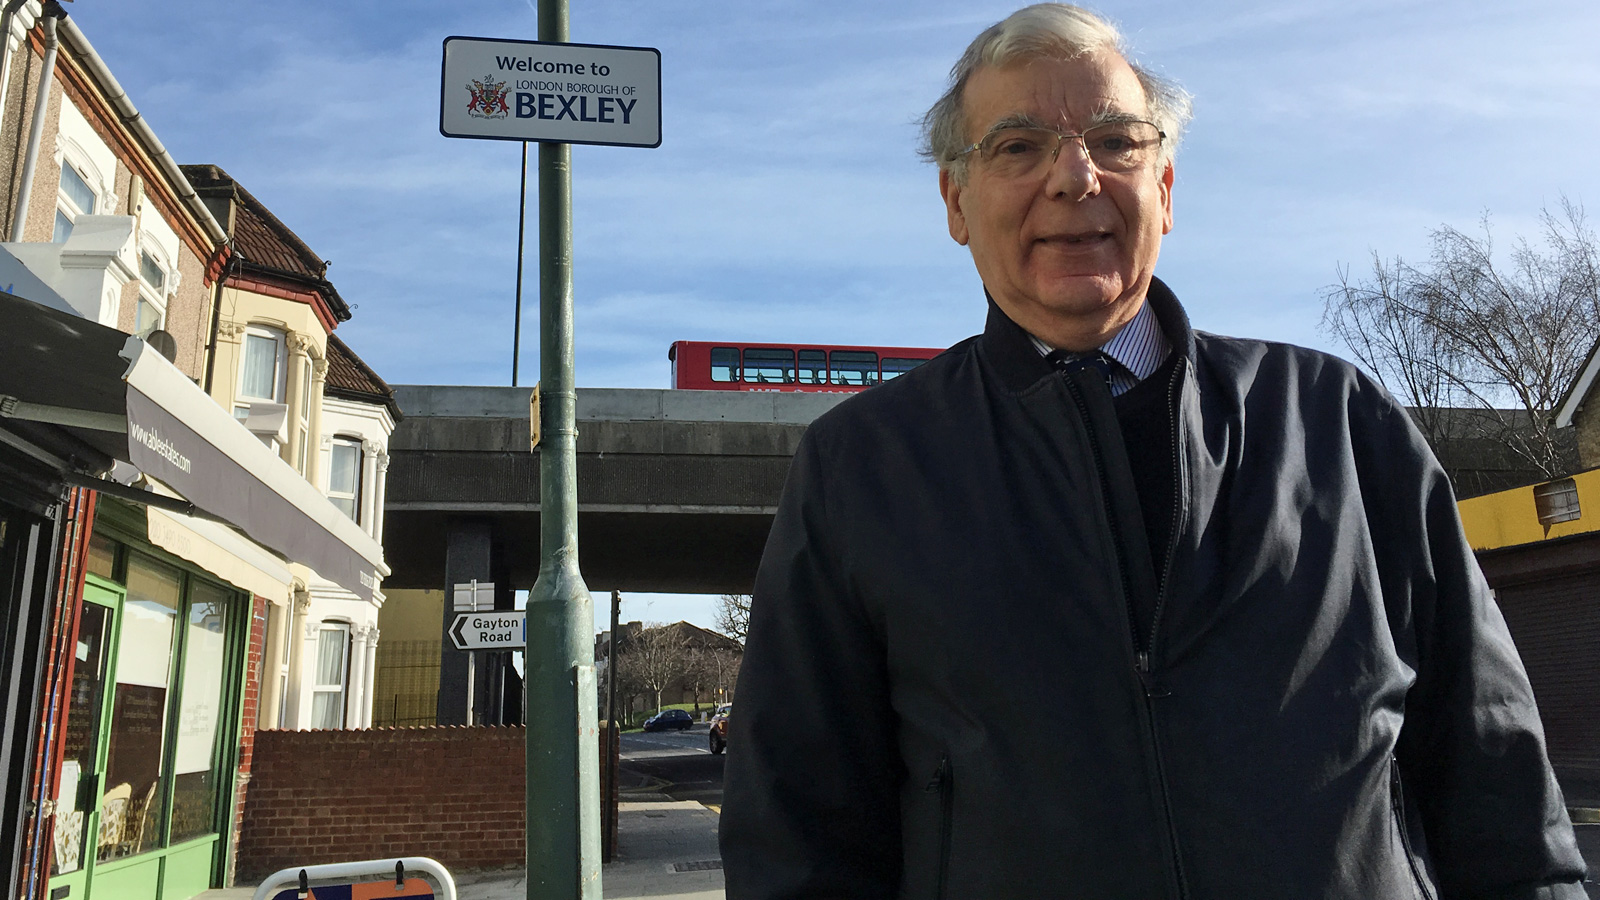 Bexley Is Bonkers blogger who wrote about councillor's libel case has harassment charge dropped